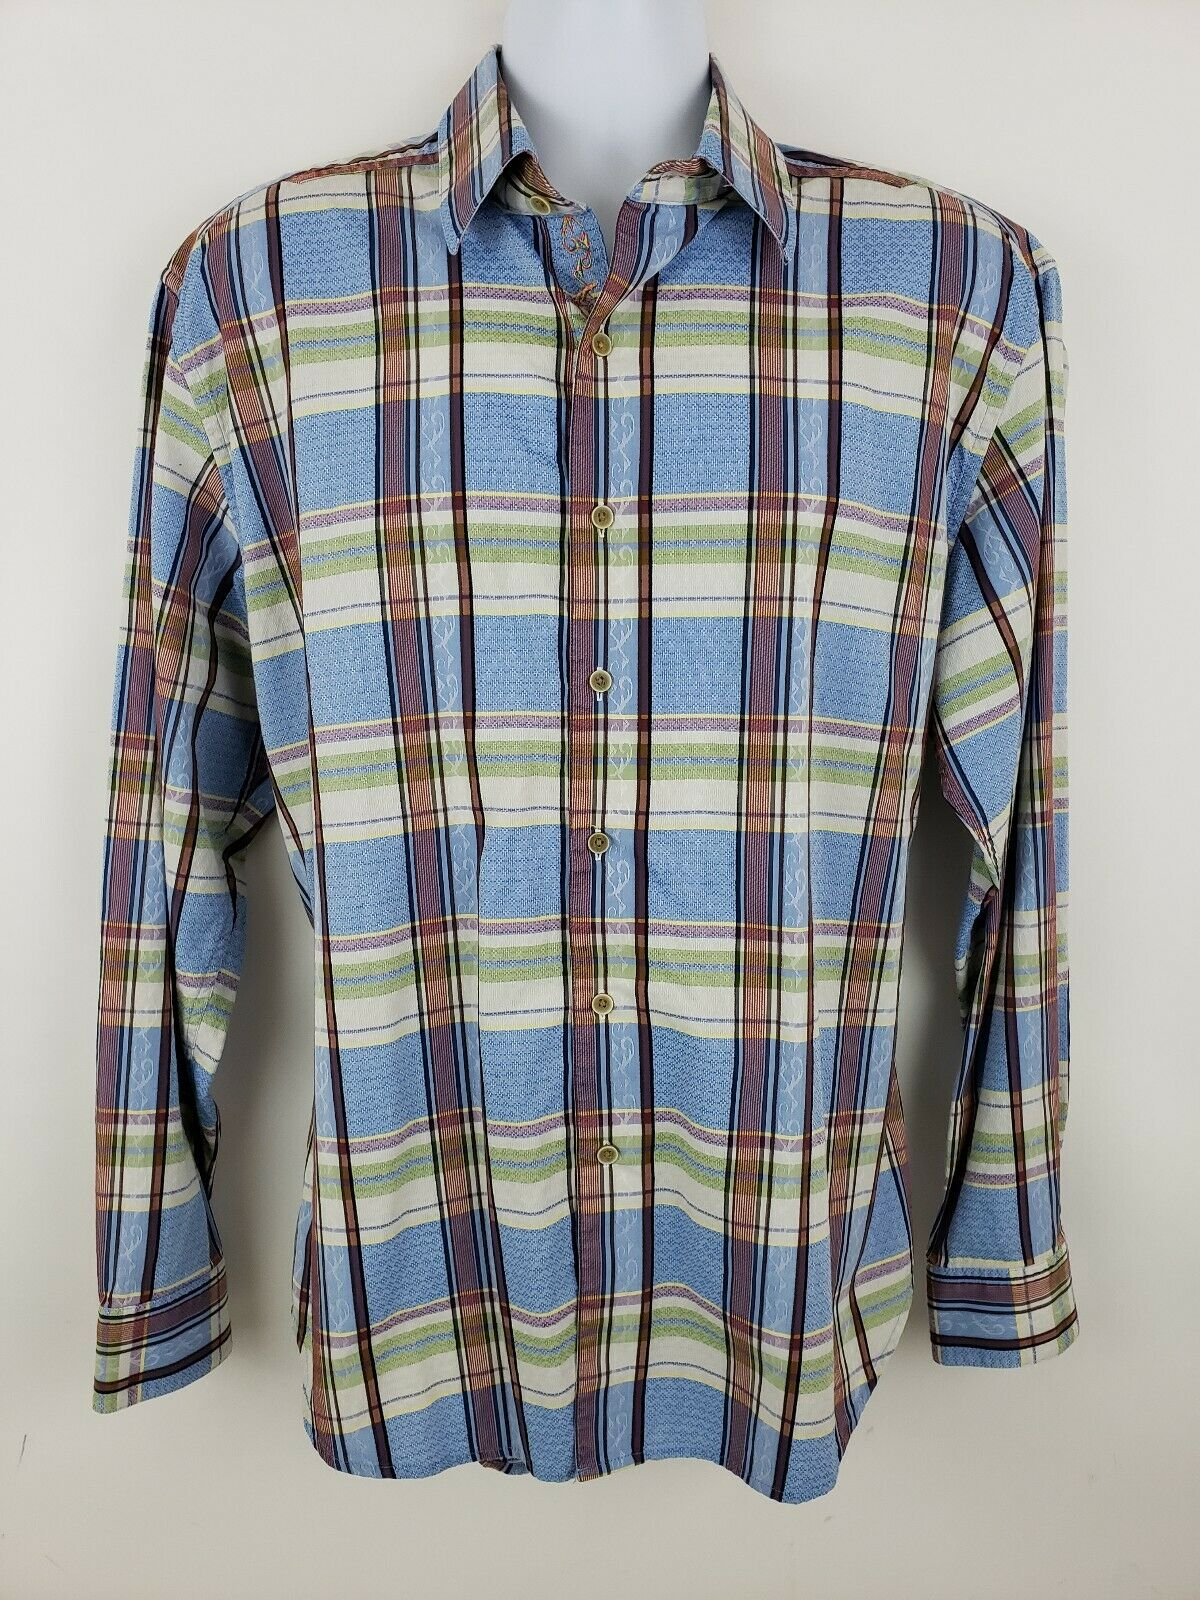 e6b1618e4 Robert bluee Plaid Sleeve Button Front Men's Shirt Size XL Long Graham  nnriqe1067-Casual Button-Down Shirts